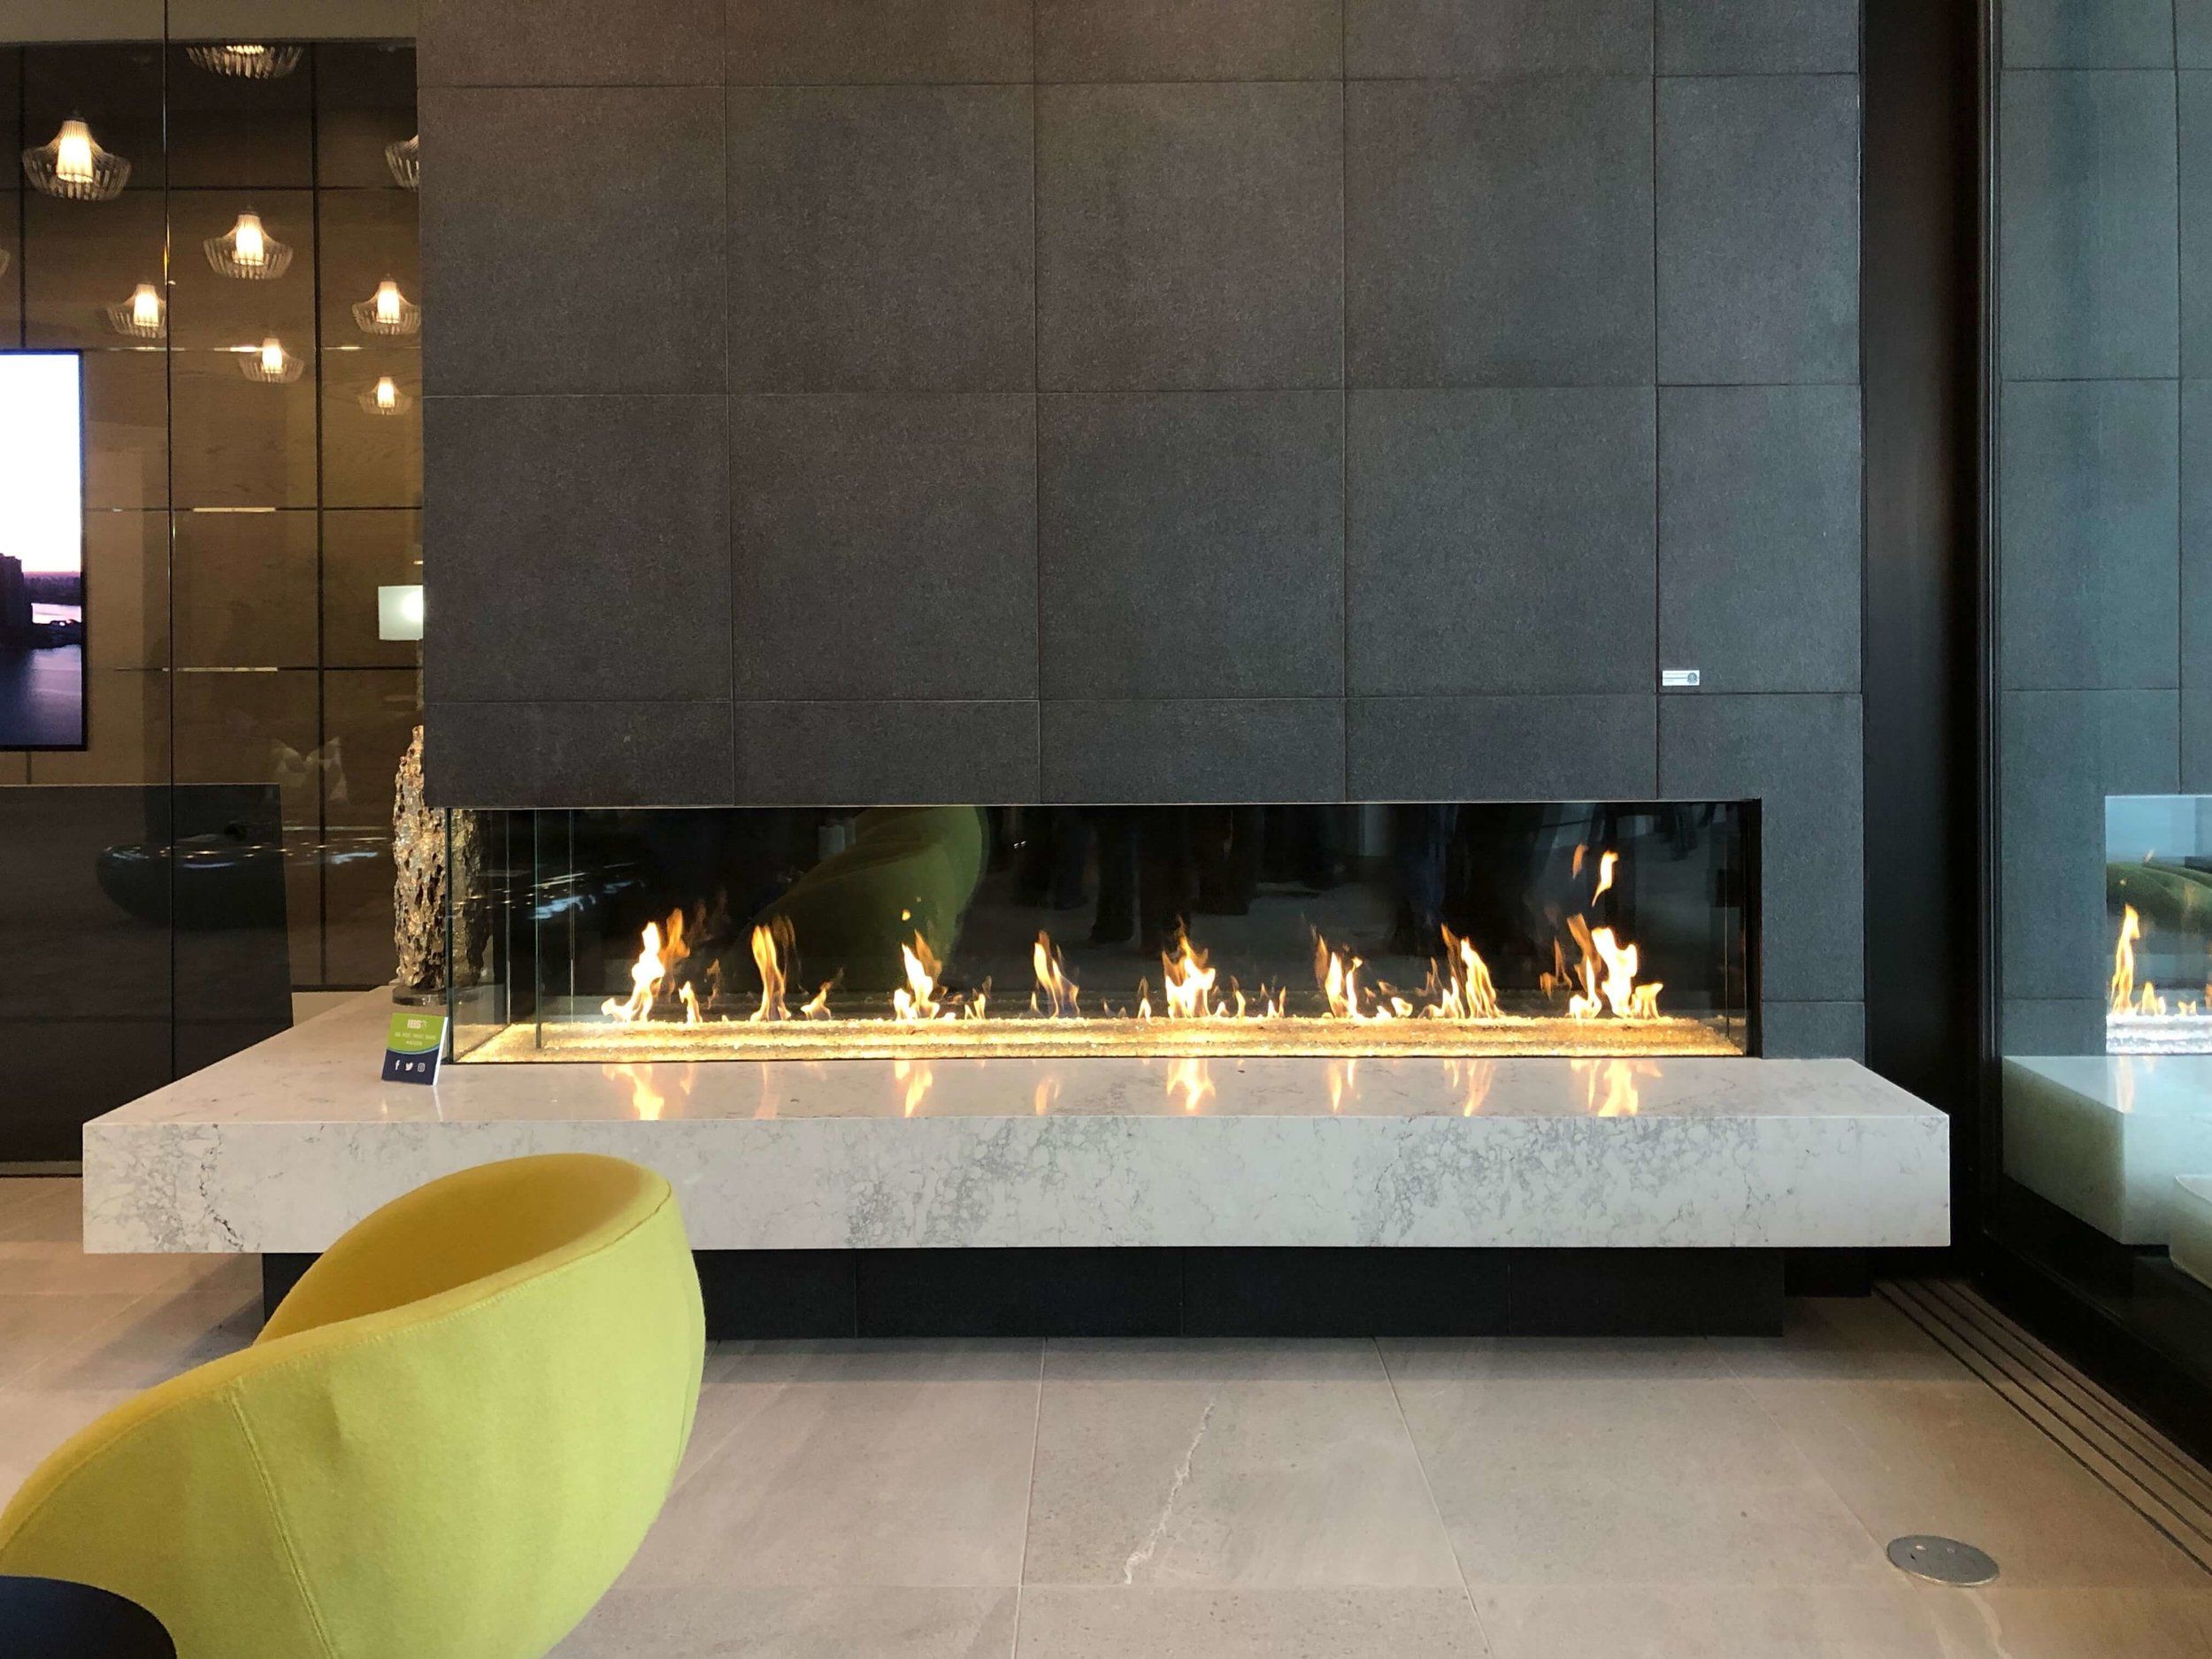 Linear fireplace, The New American Home Tour 2019 | Designed and built by Sun West Custom Homes